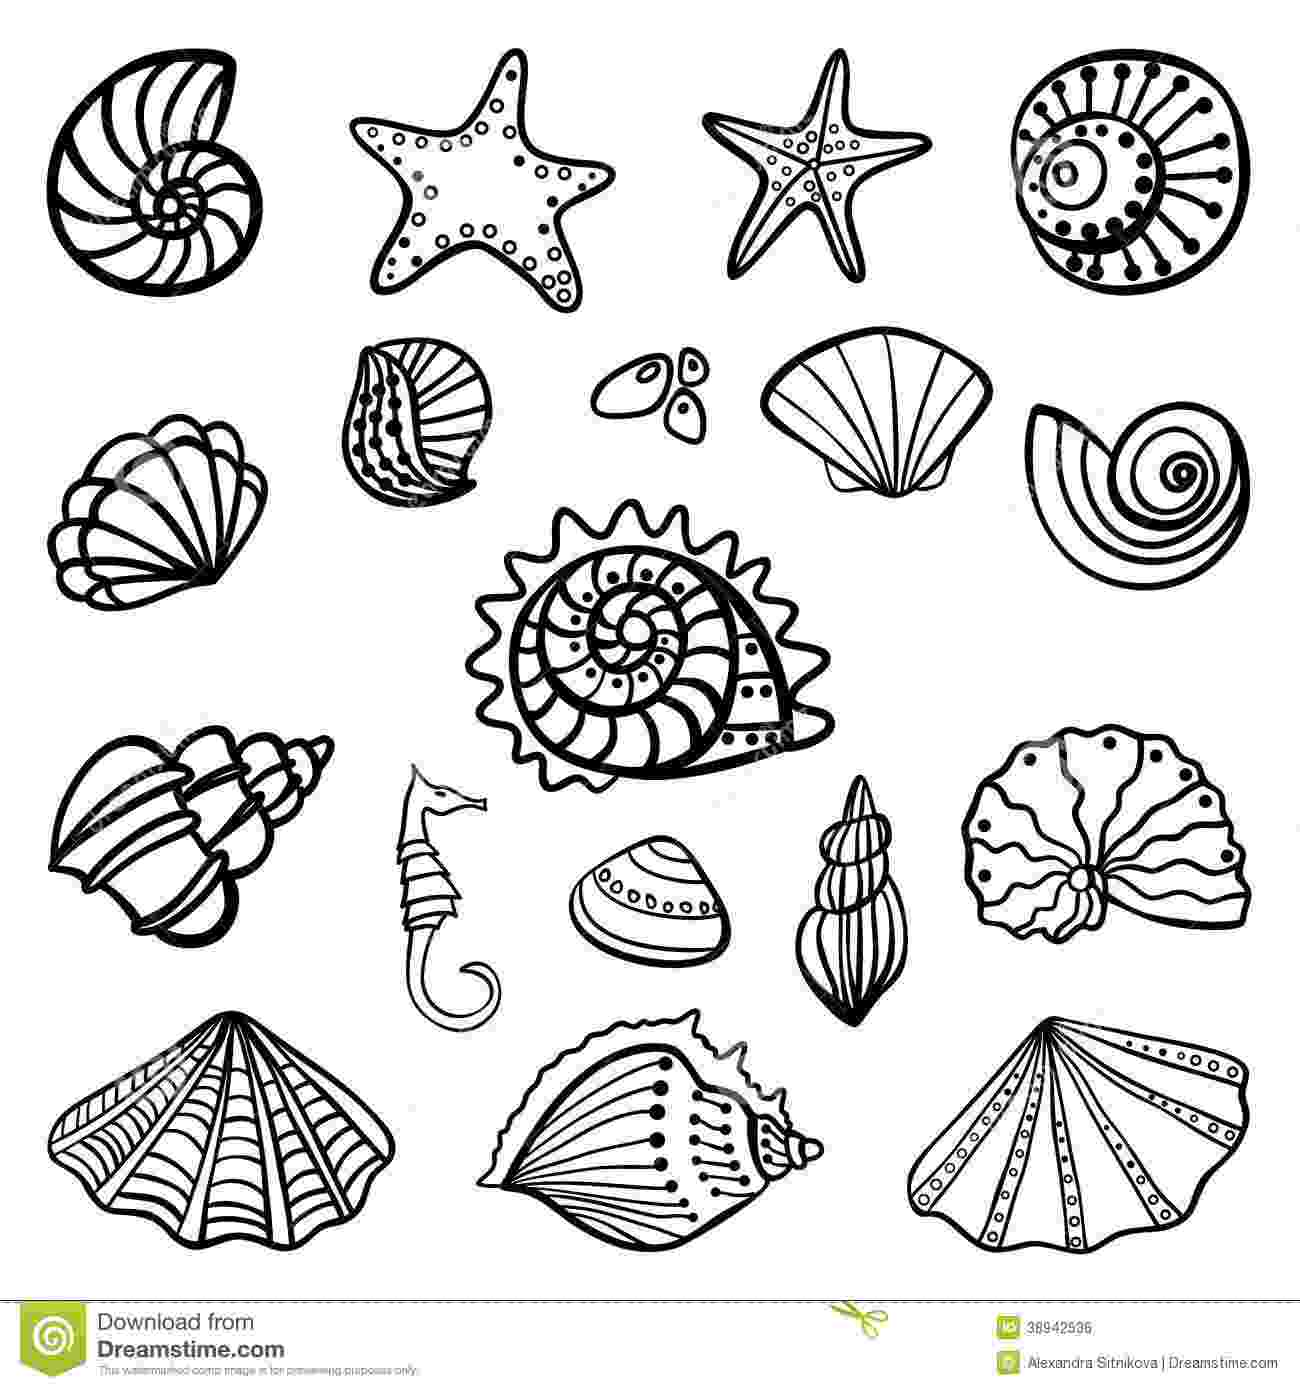 seashell coloring page beach shells coloring pages download and print for free coloring seashell page